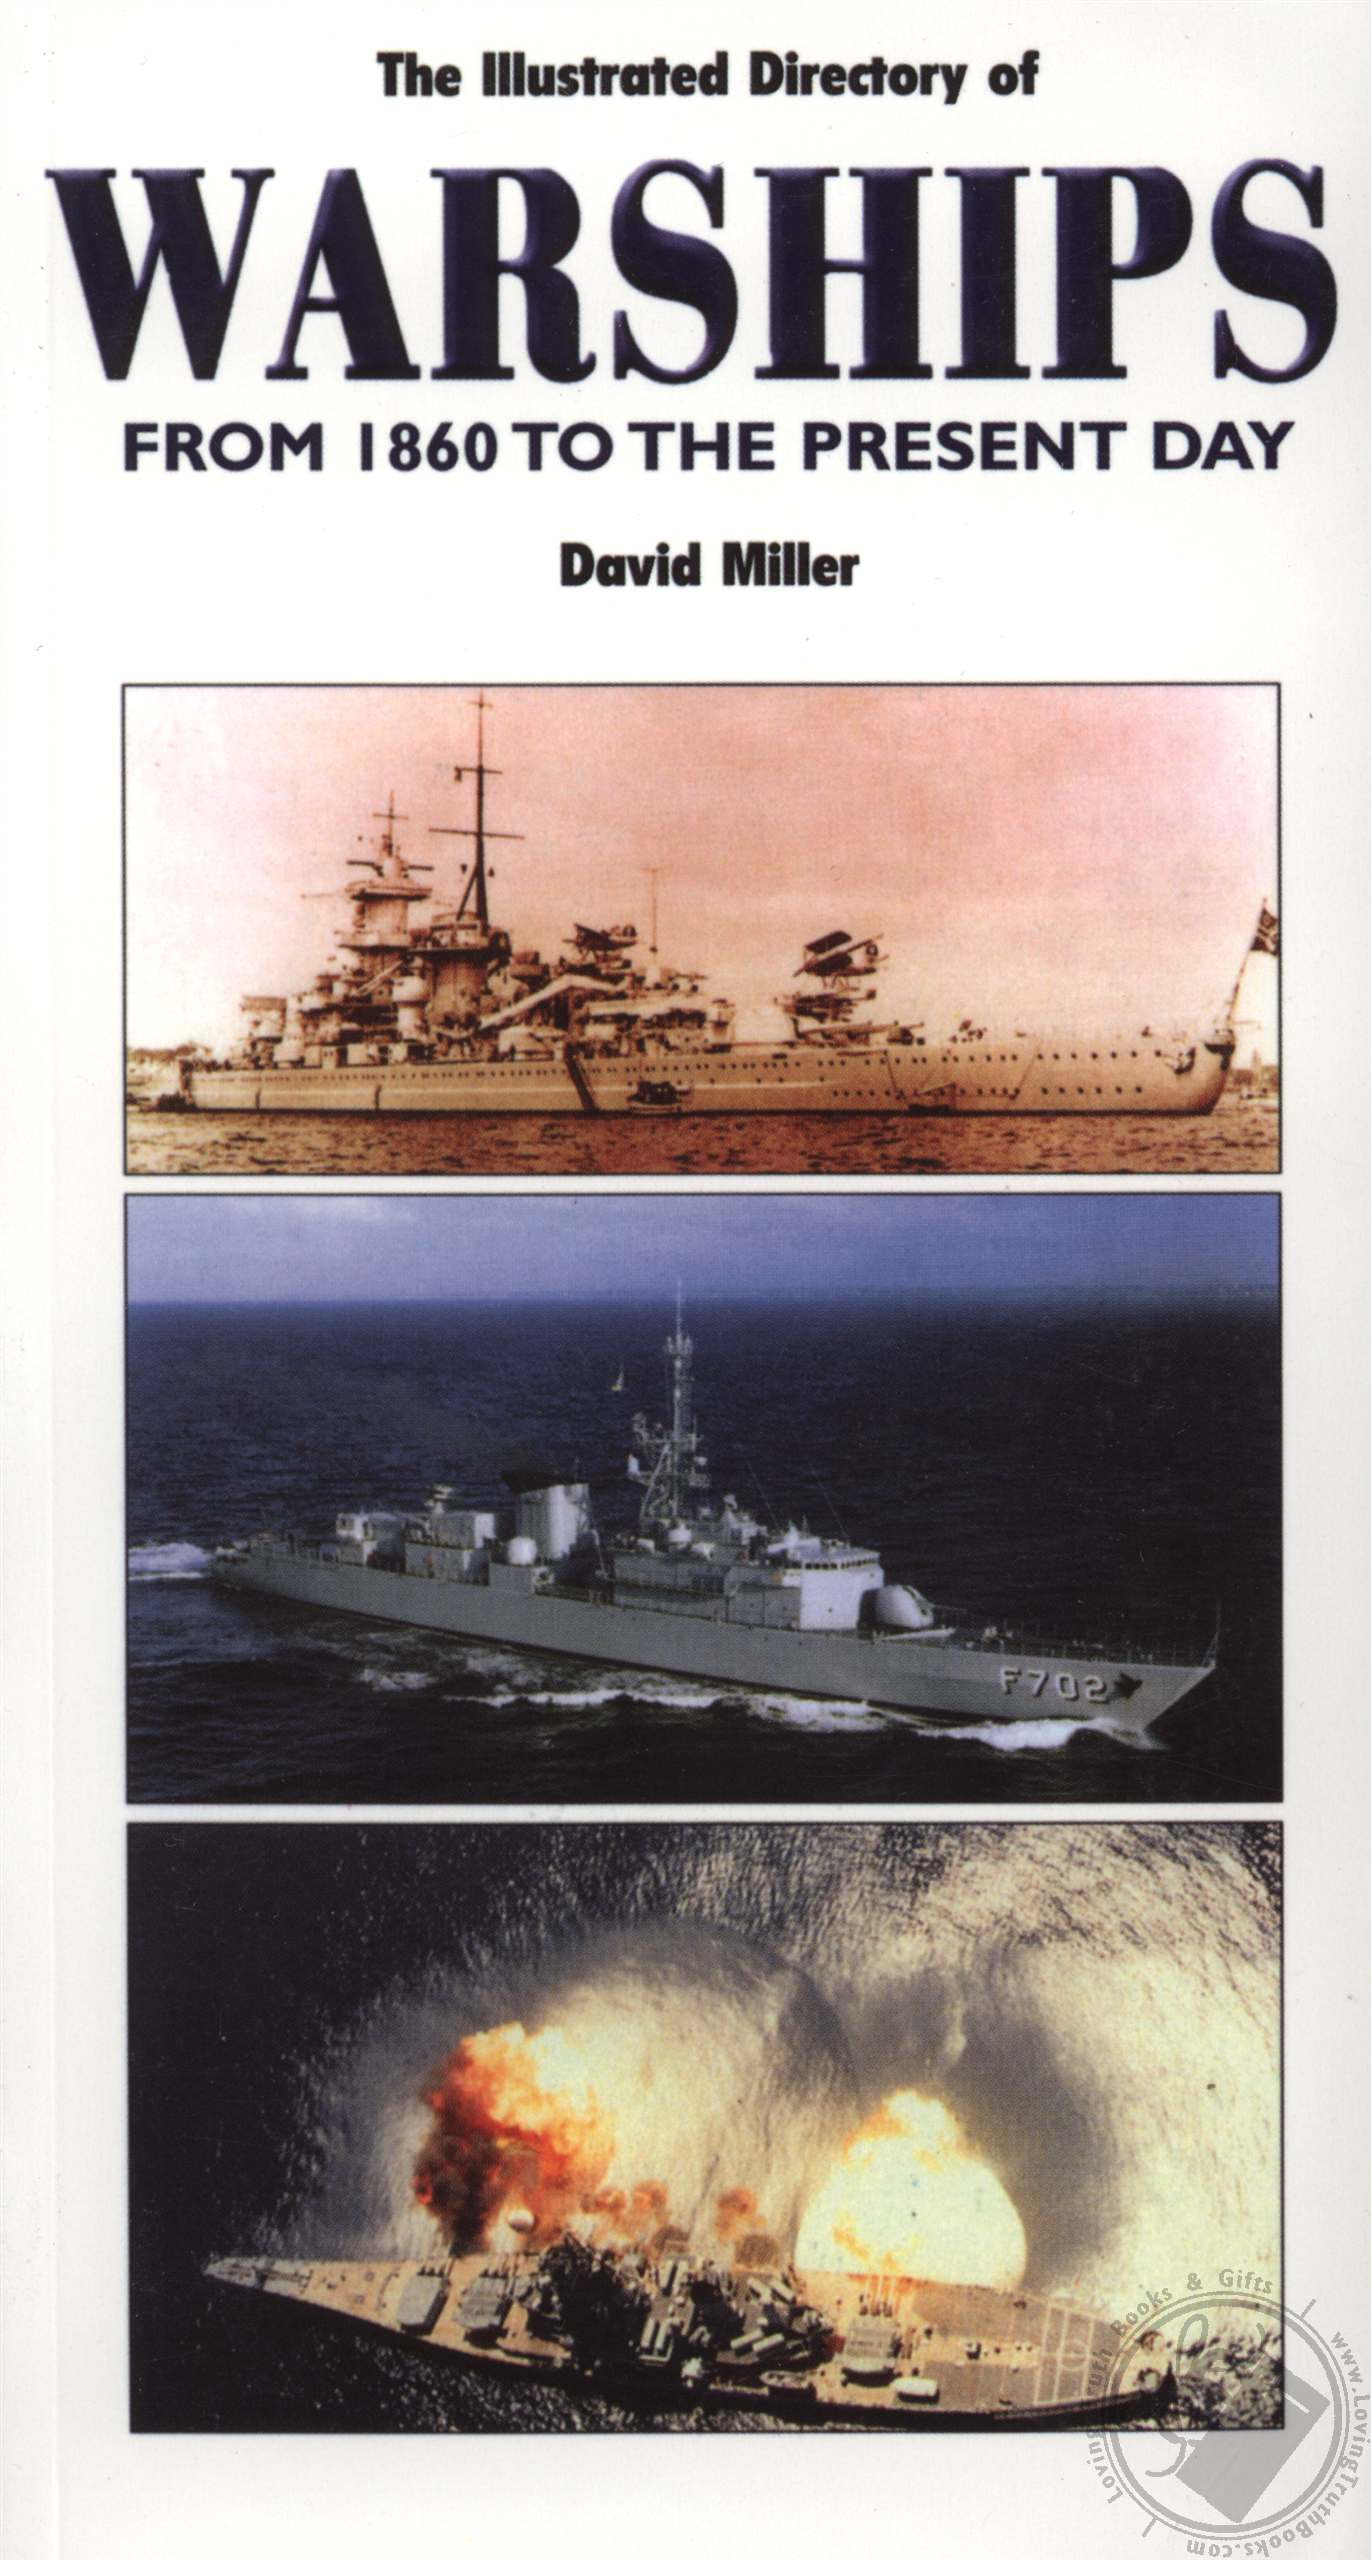 Illustrated Directory of Warships From 1860 to the Present